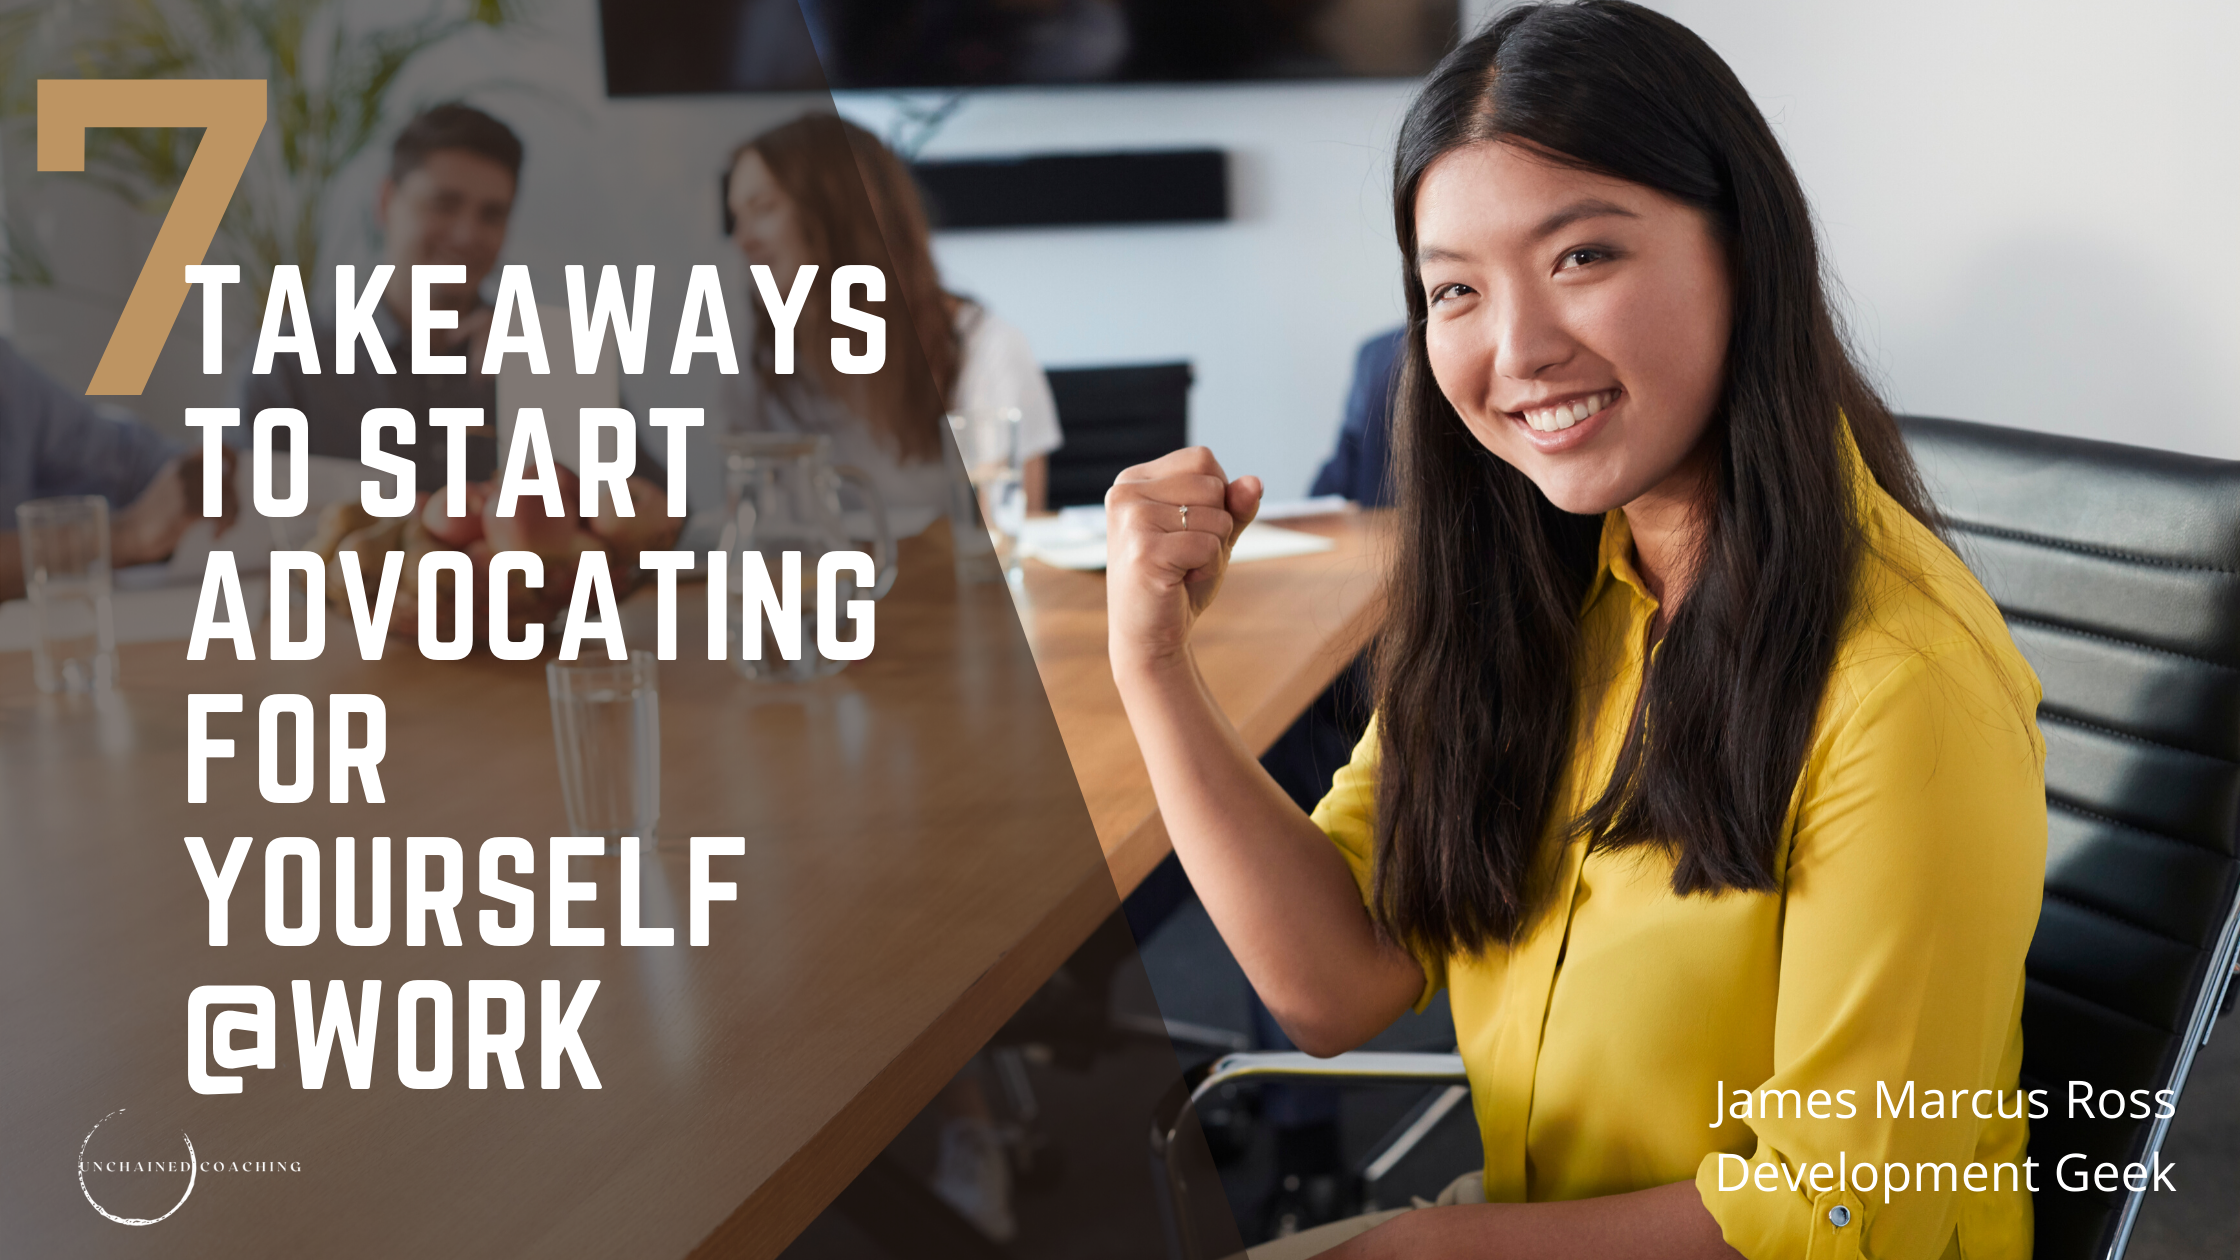 7 Takeaways To Start Advocating For Yourself